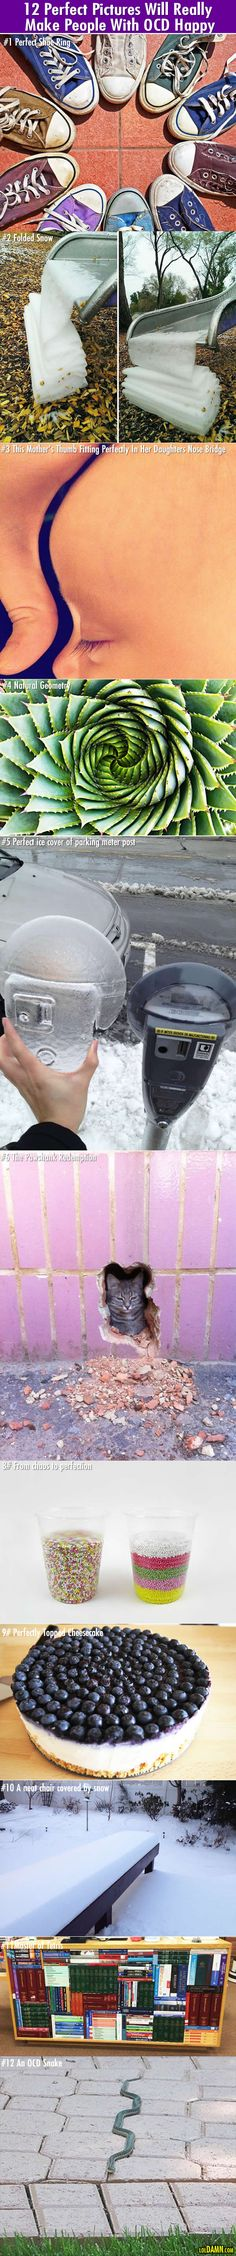 Your OCD will be really happy after seeing those 12 perfect pictures. |LOL, Damn! Funny and Awesome pictures.